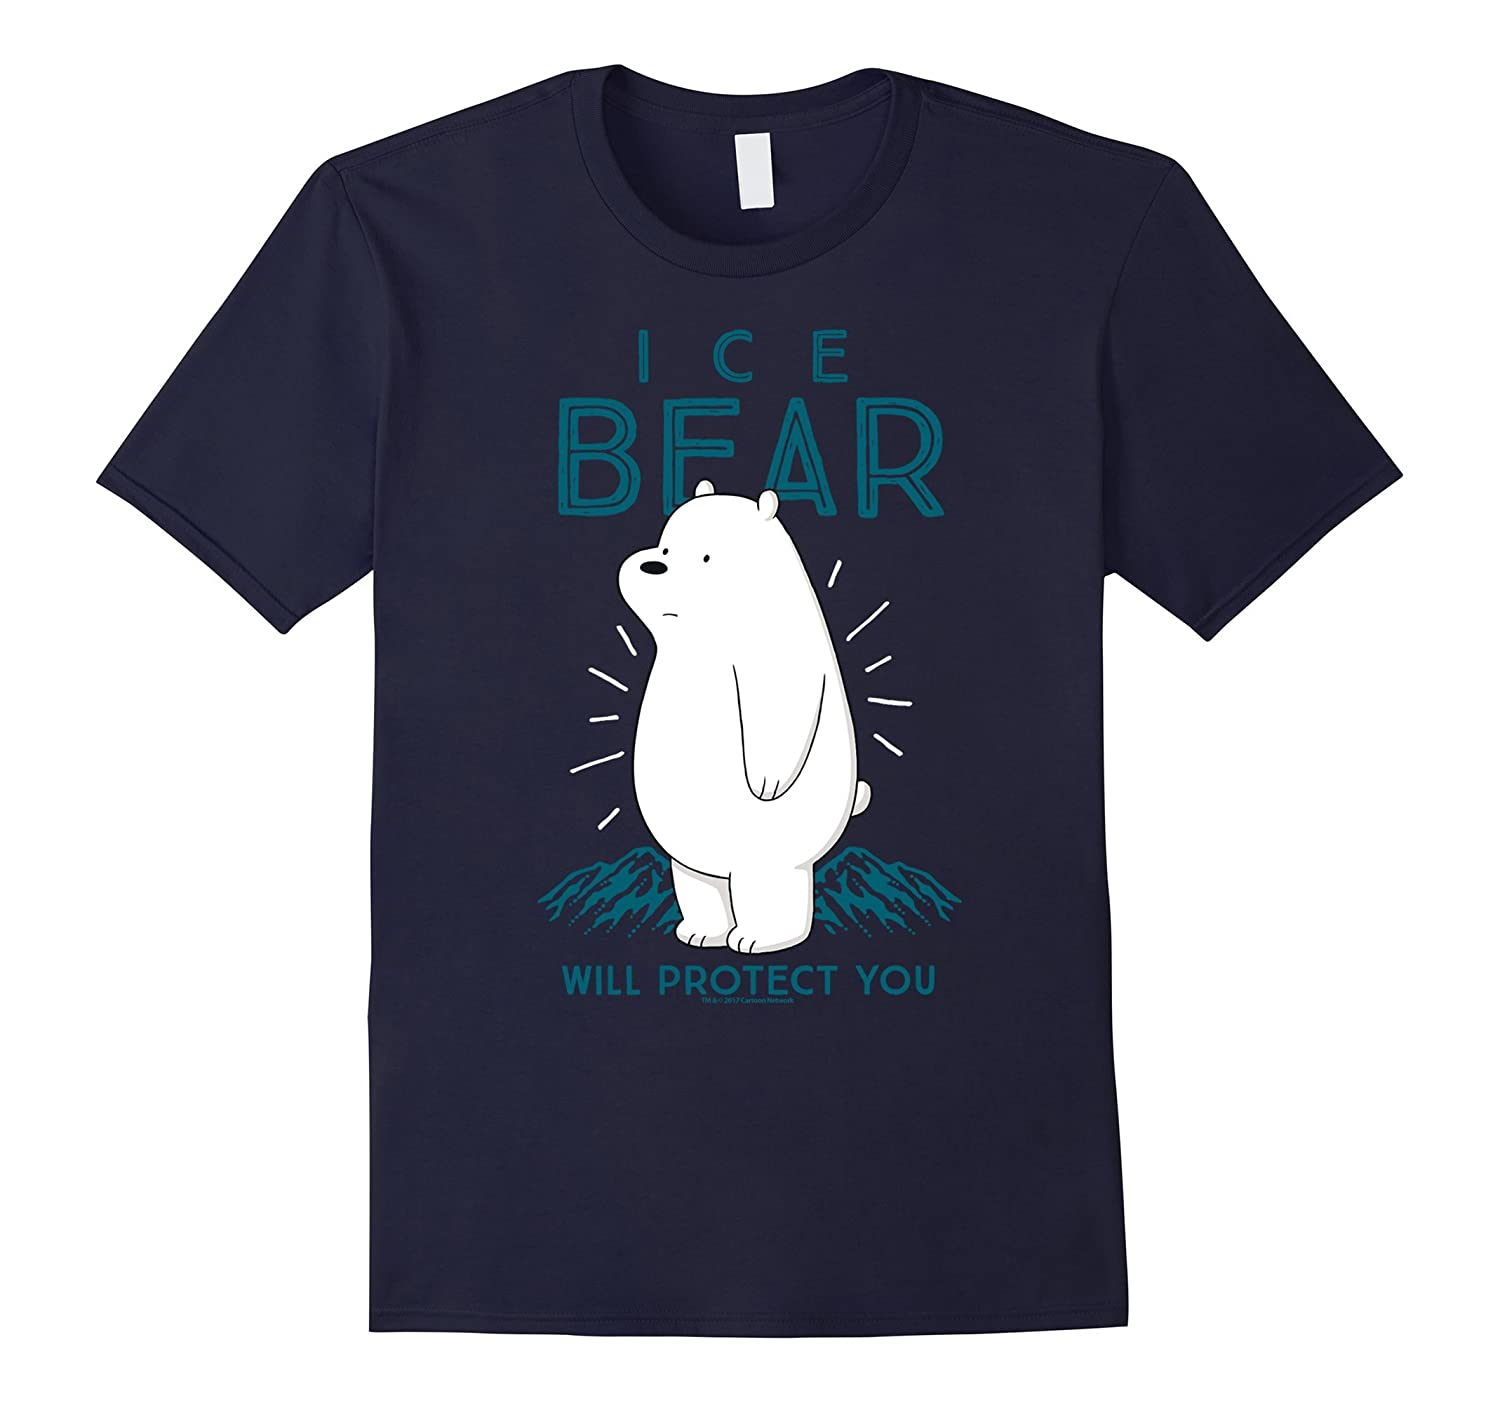 CN We Bare Bears Ice Bear Will Protect You Graphic T-Shirt-ah my shirt one gift